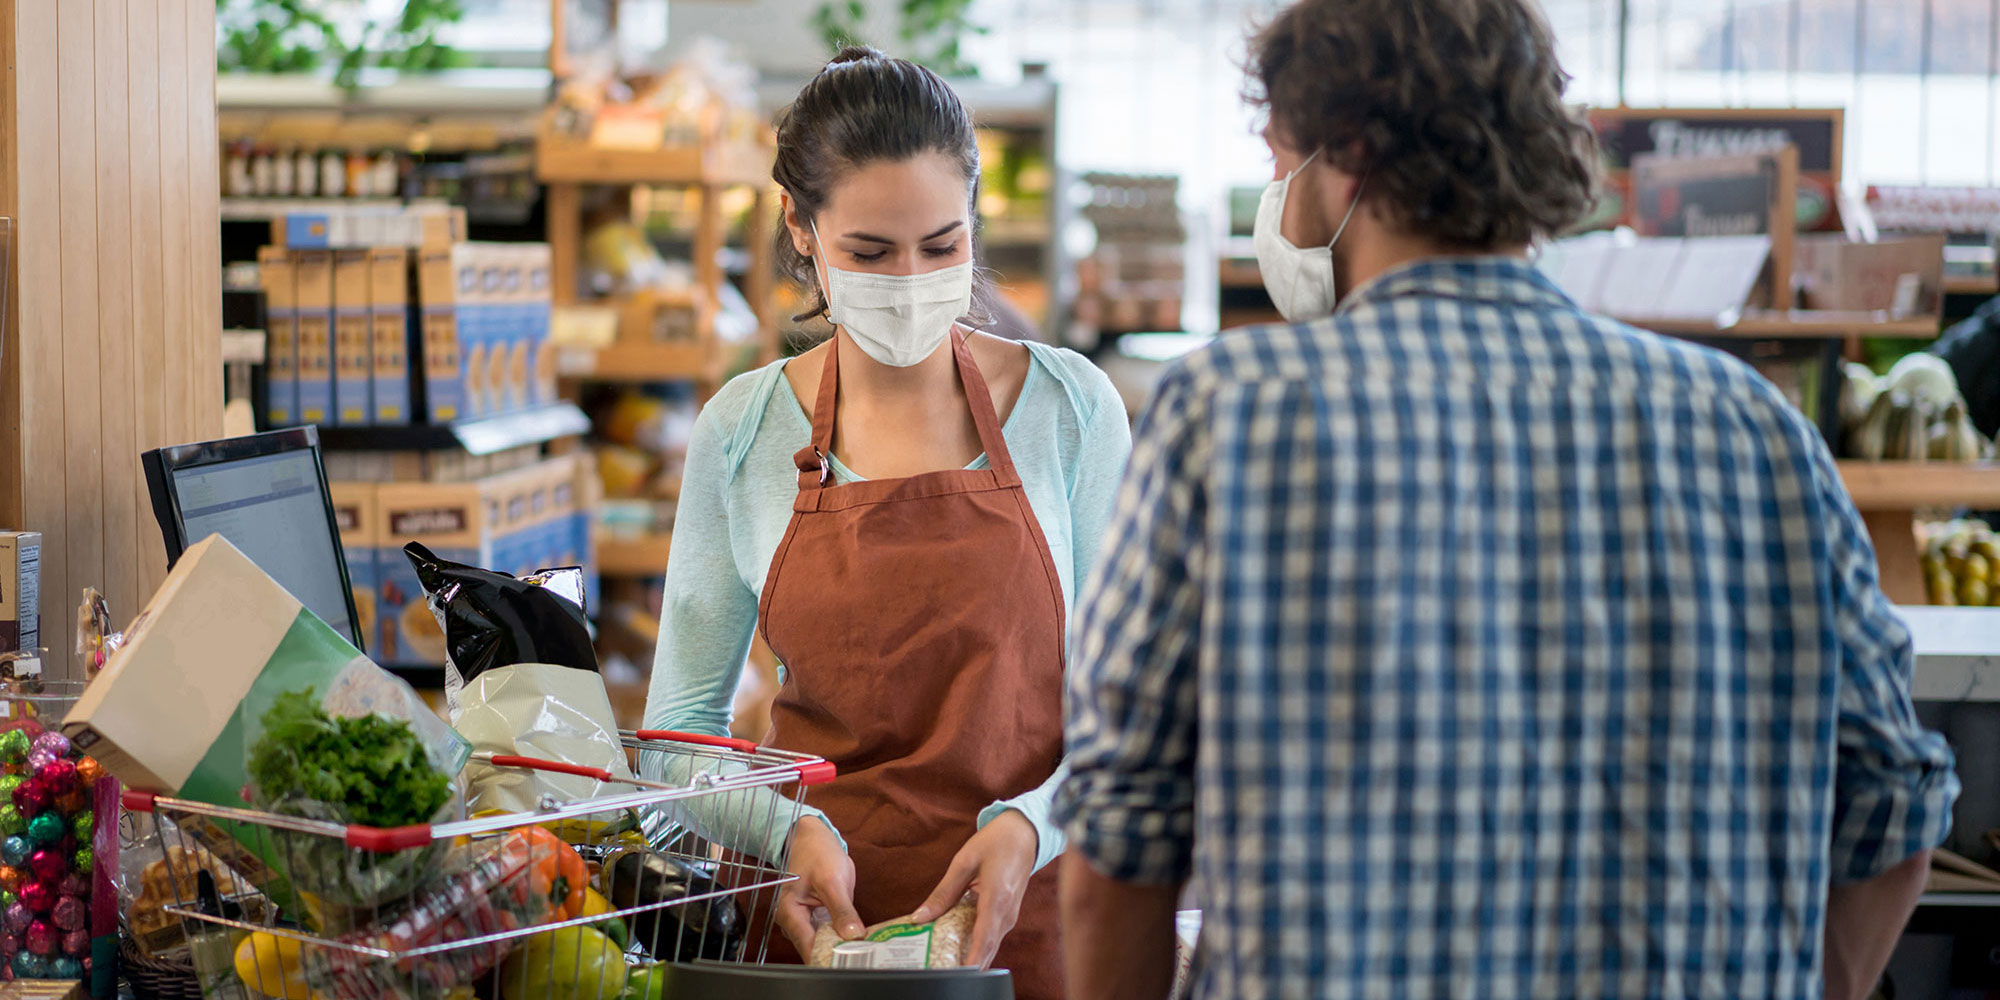 The Post-Pandemic Market: How Retail Grocery is Adapting